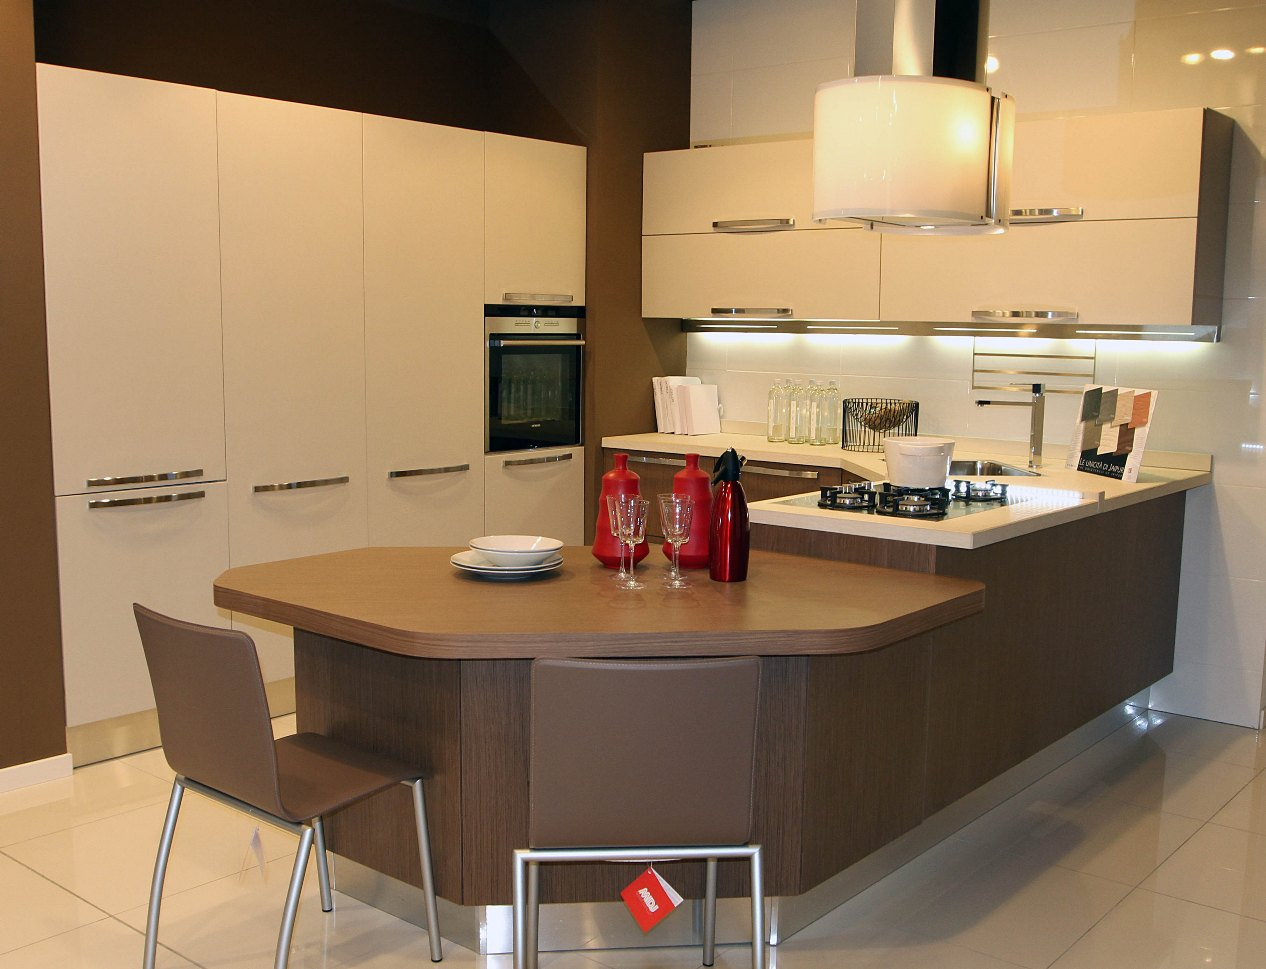 Outlet cucine veneto best outlet uac veneta cucina with outlet cucine veneto good outlet - Outlet arredamento cucine ...